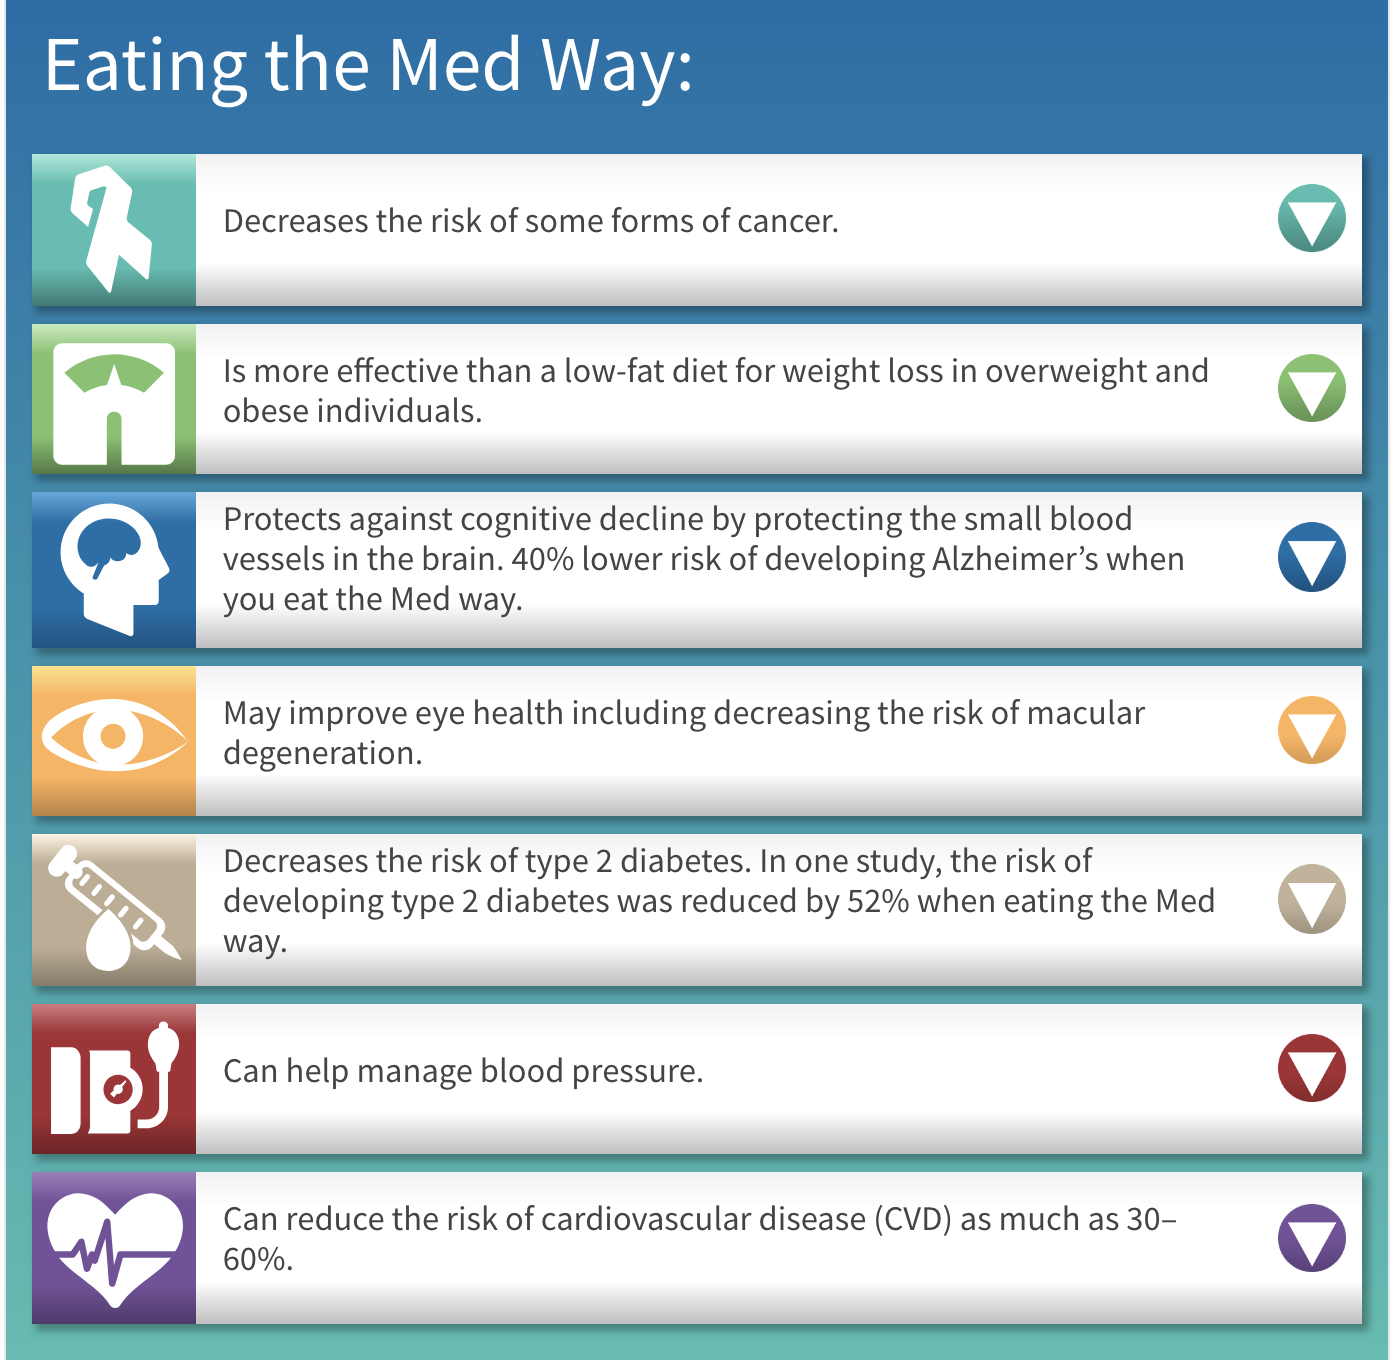 Benefits of eating the med way